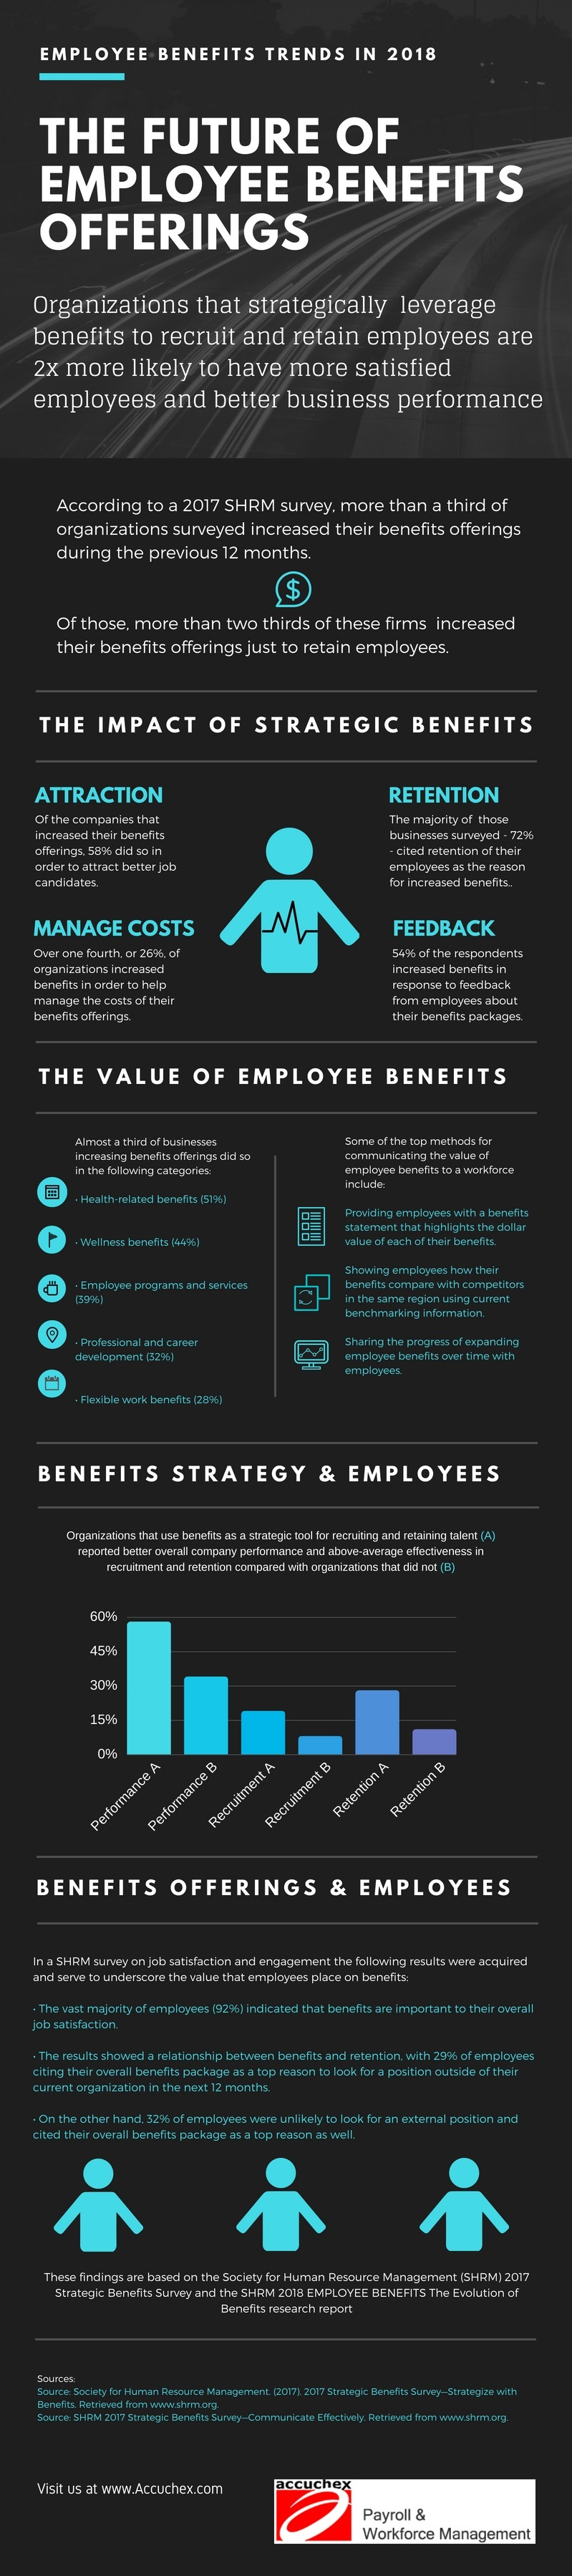 the-future-of--Employee-Benefits-offerings-infographic